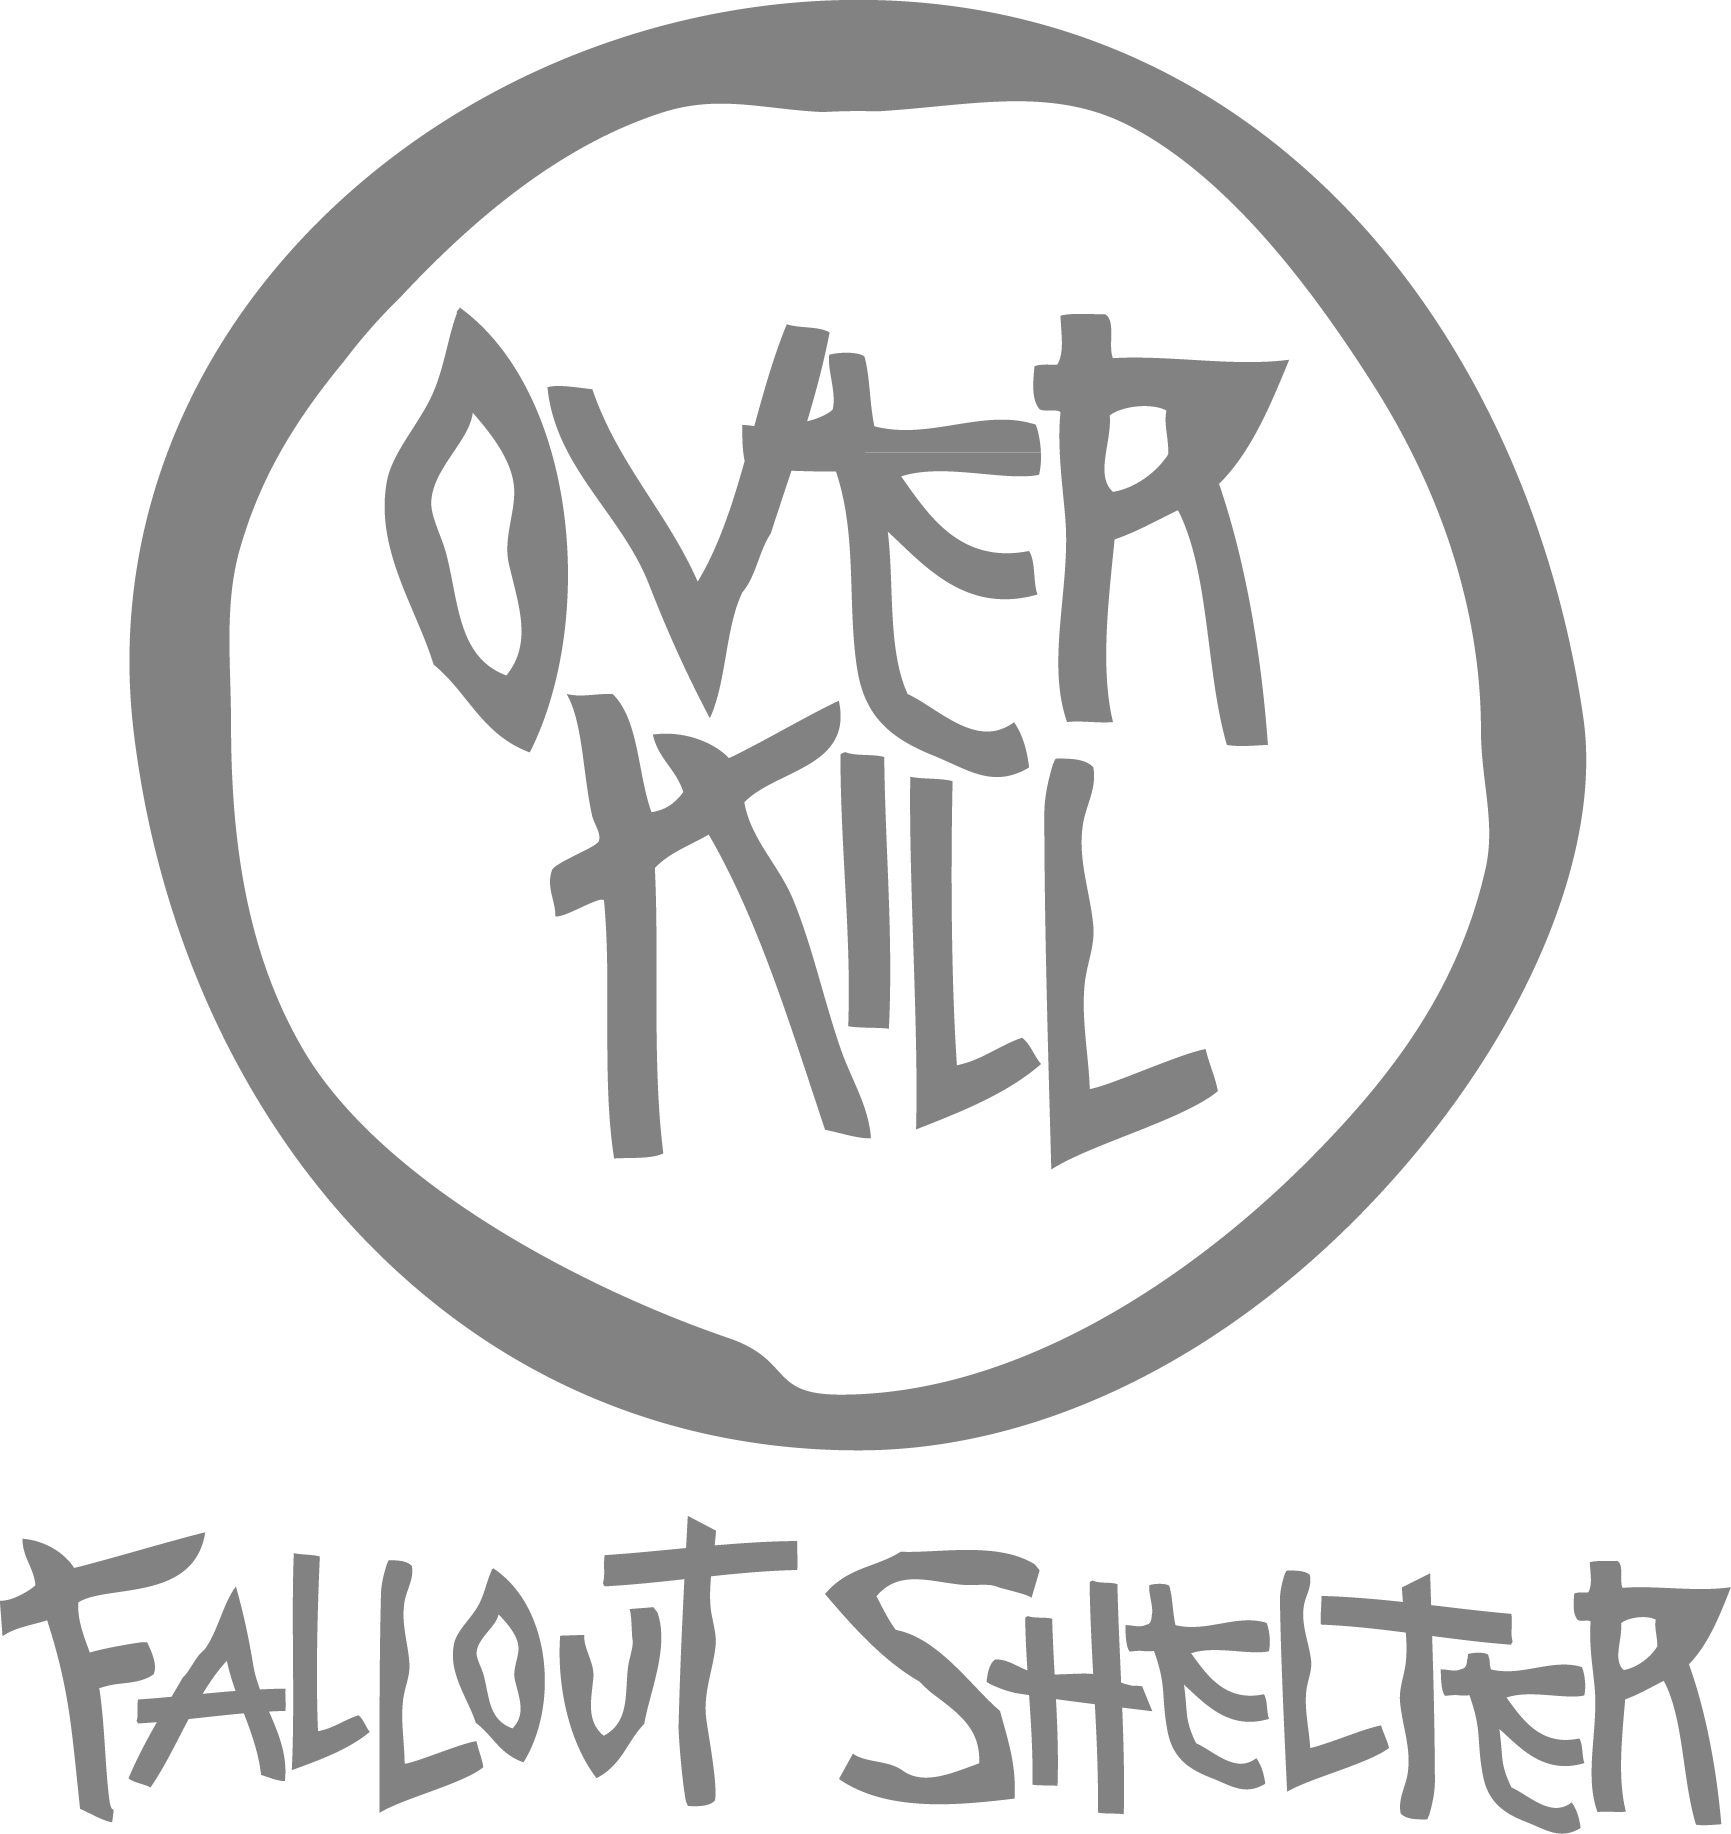 Overkill Fallout Shelter. Bar. Ottawa Ontario Canada. Swag. Merch. Promotional merchandise. All Things Made. Tshirst. Screen printing. Branding. Promo. Swag. glassware. keychains.